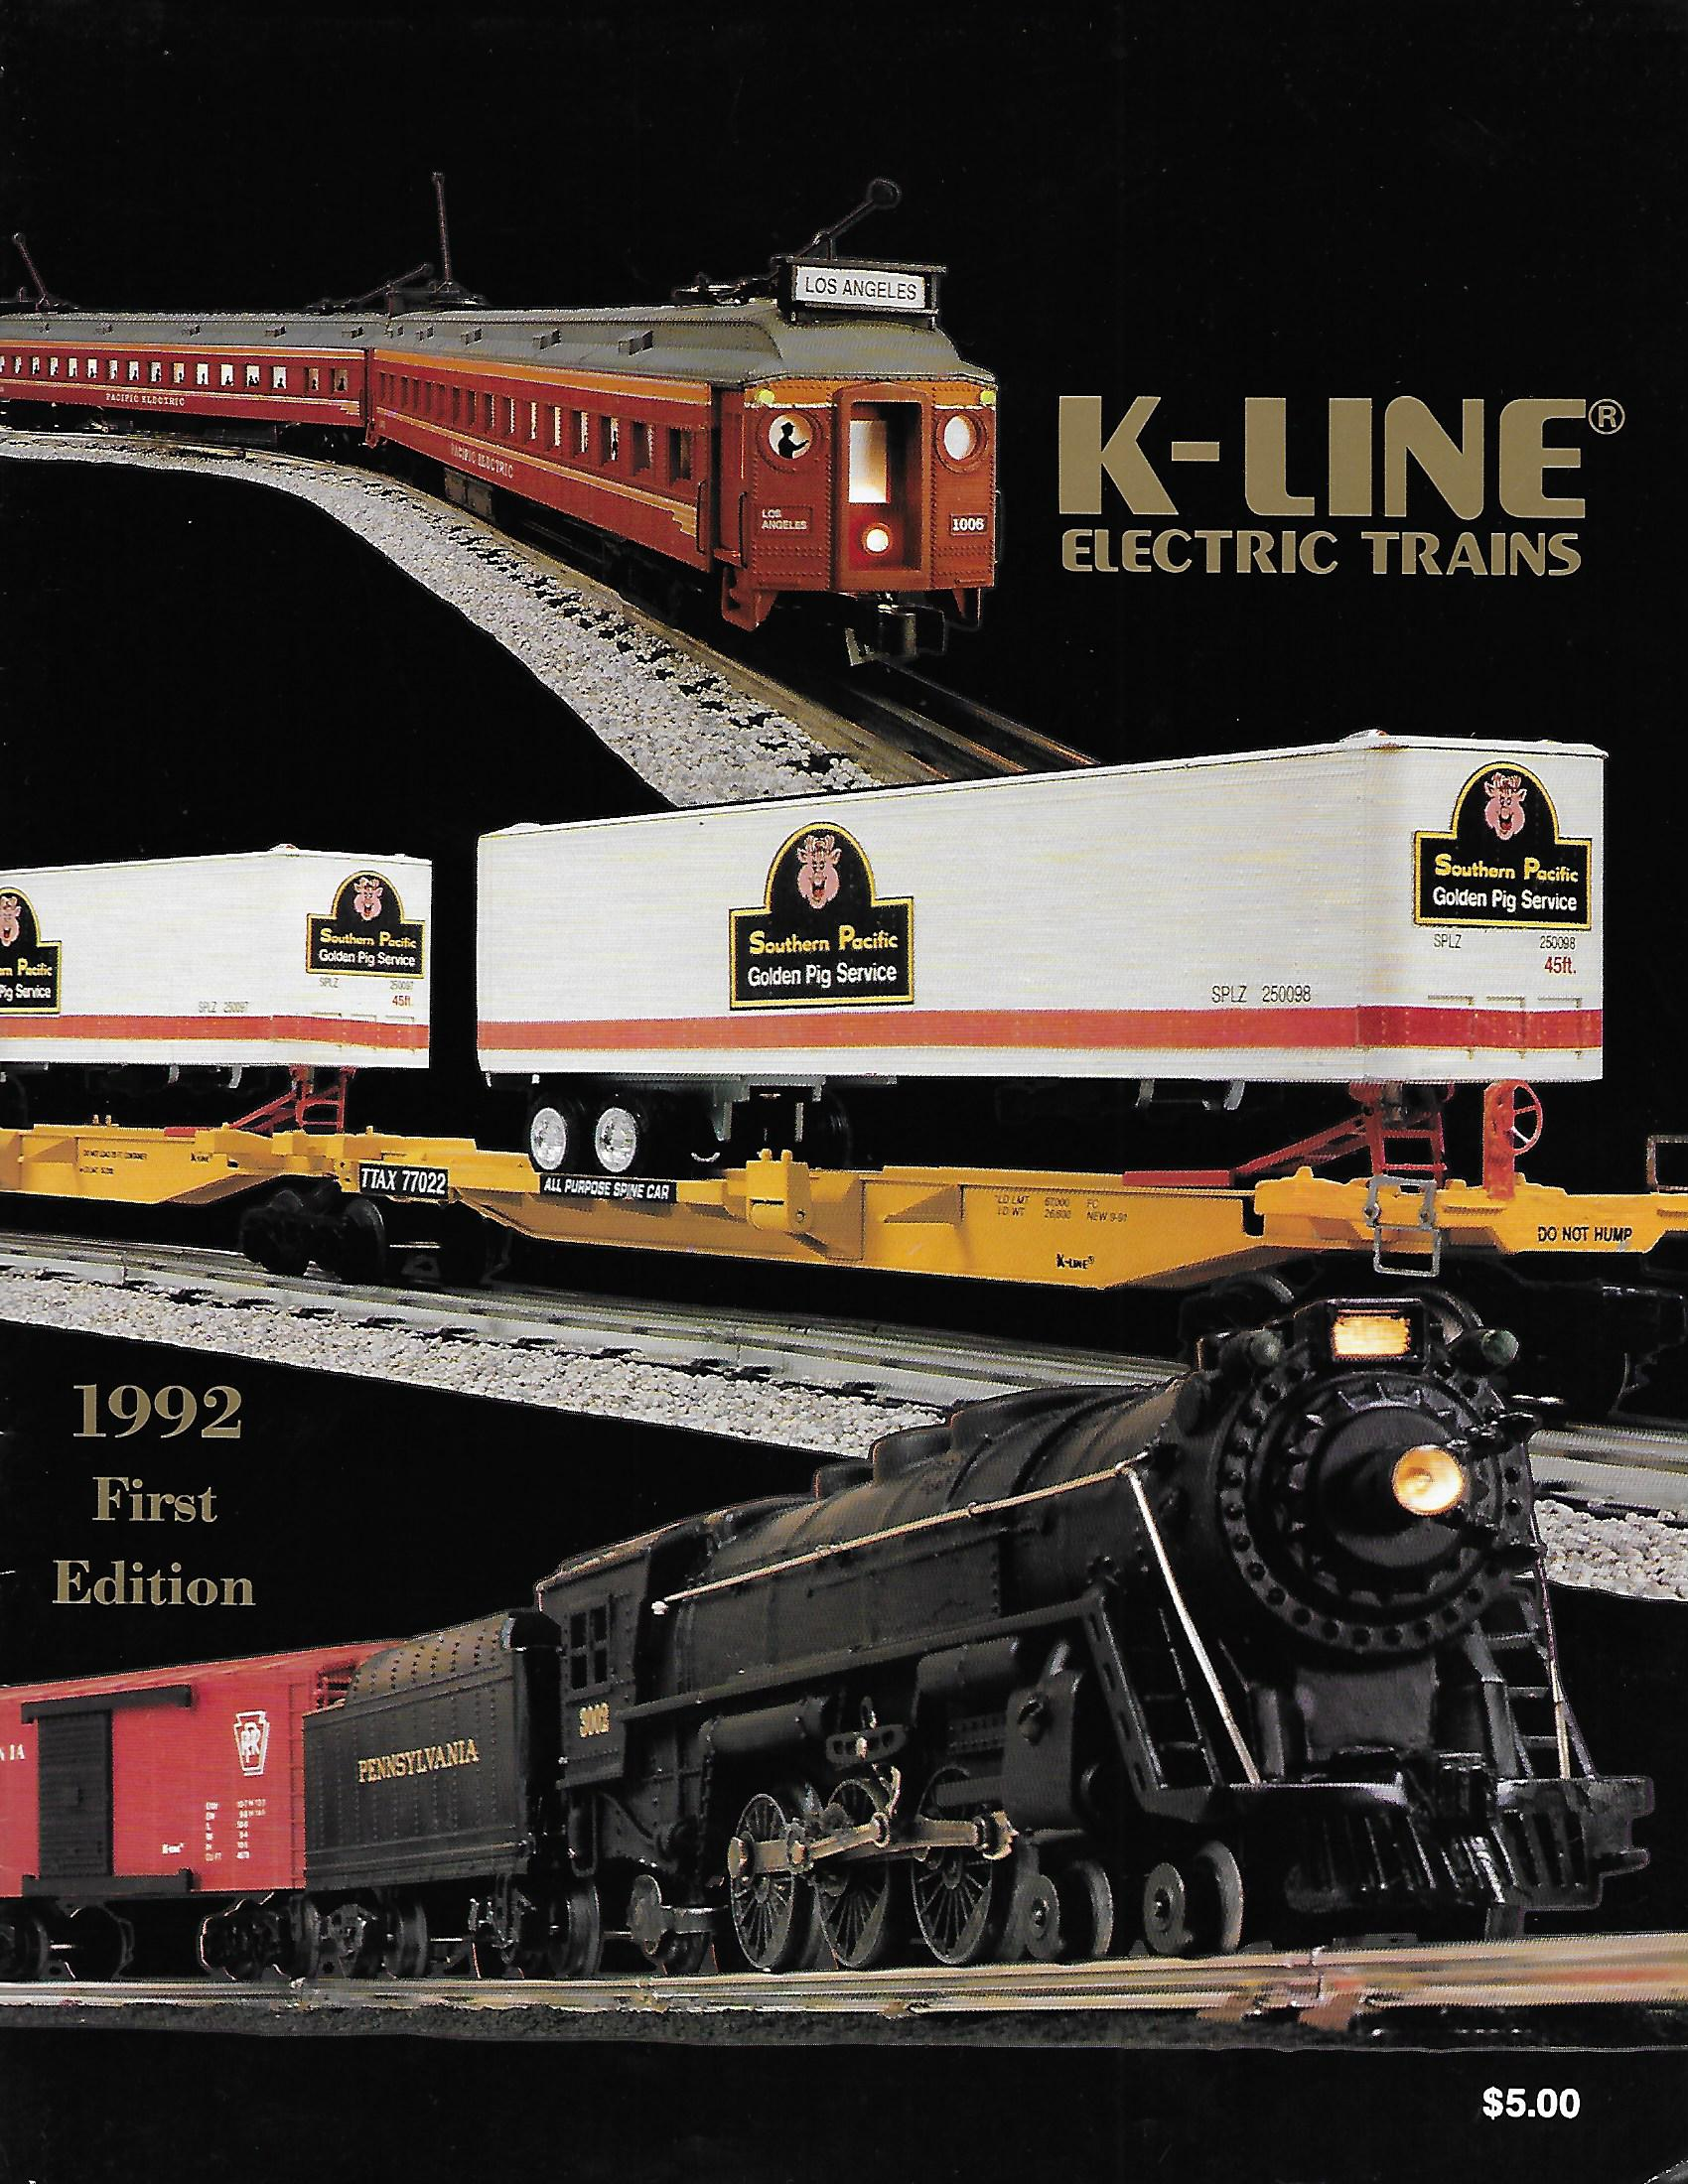 K-Line 1992 First Edition Catalog image